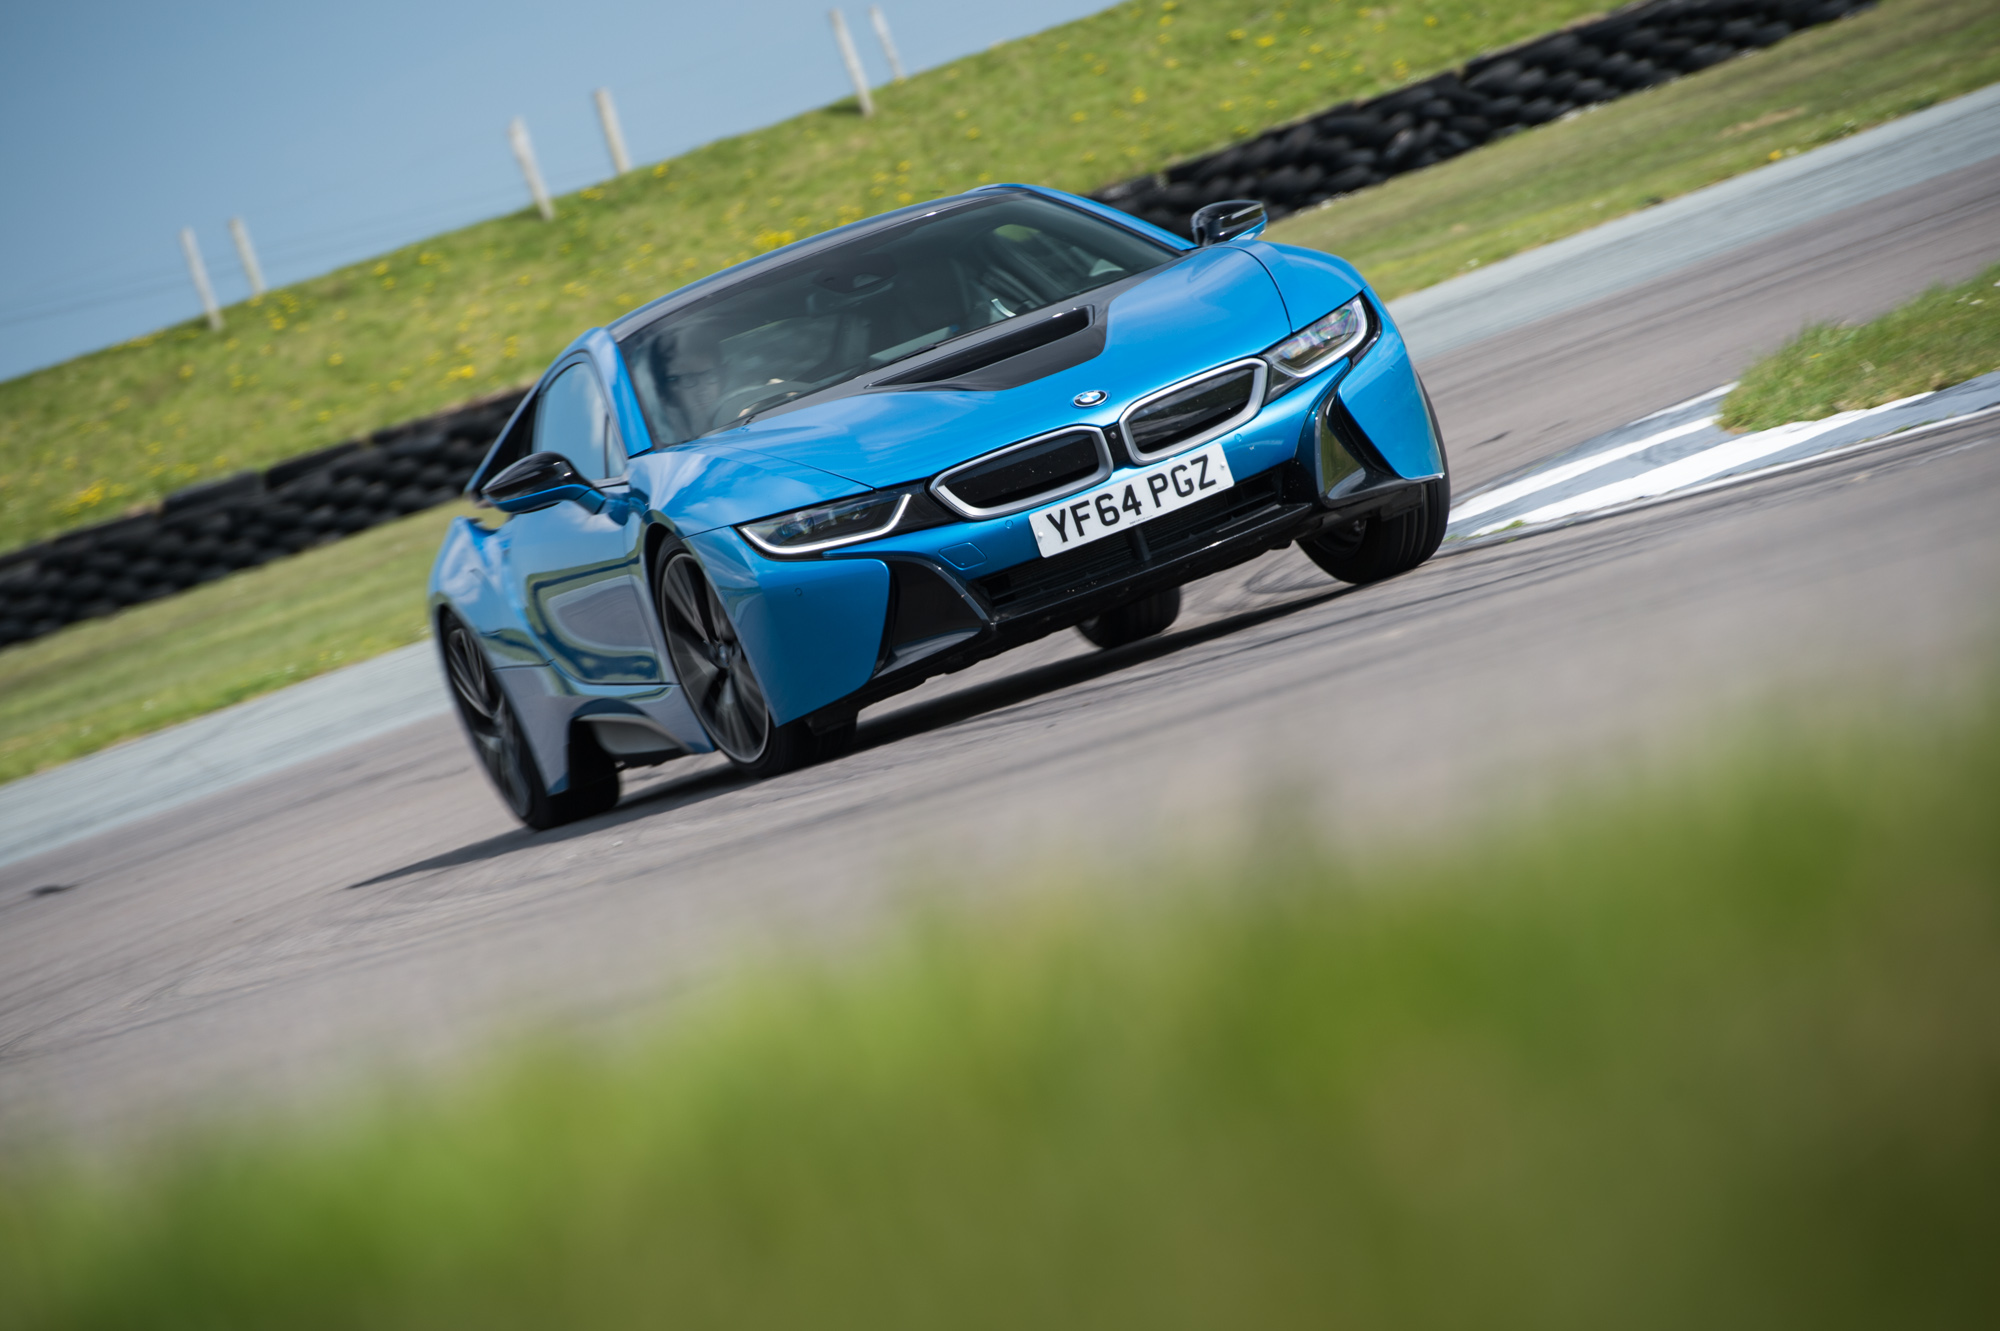 0 60 Times Bmw >> Bmw I8 Performance And 0 60 Times Evo